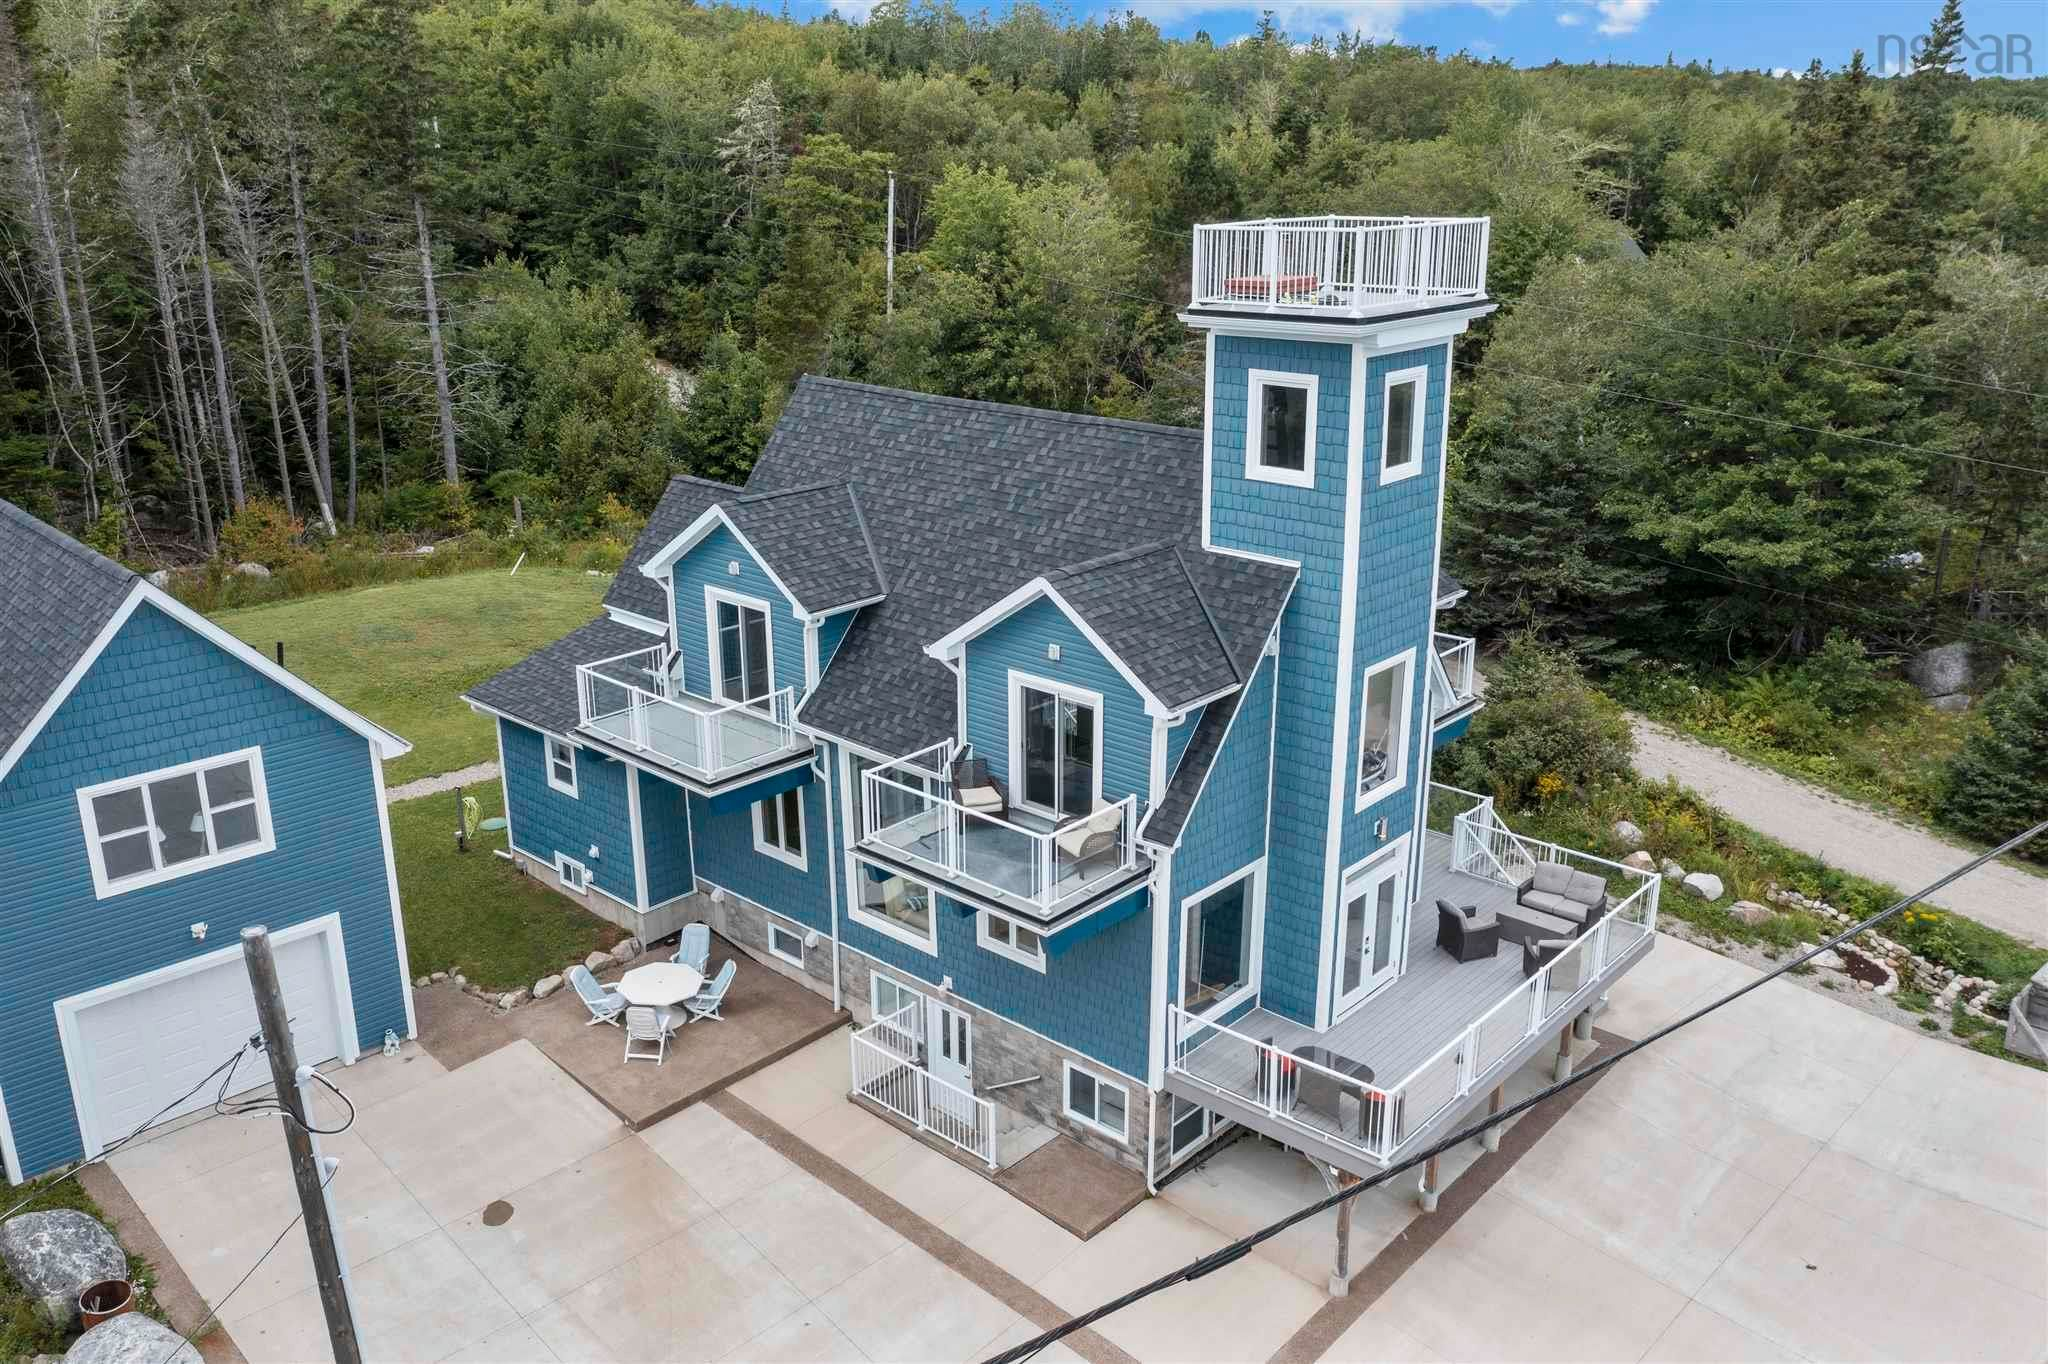 Main Photo: 596 Highway 329 in Fox Point: 405-Lunenburg County Residential for sale (South Shore)  : MLS®# 202124313